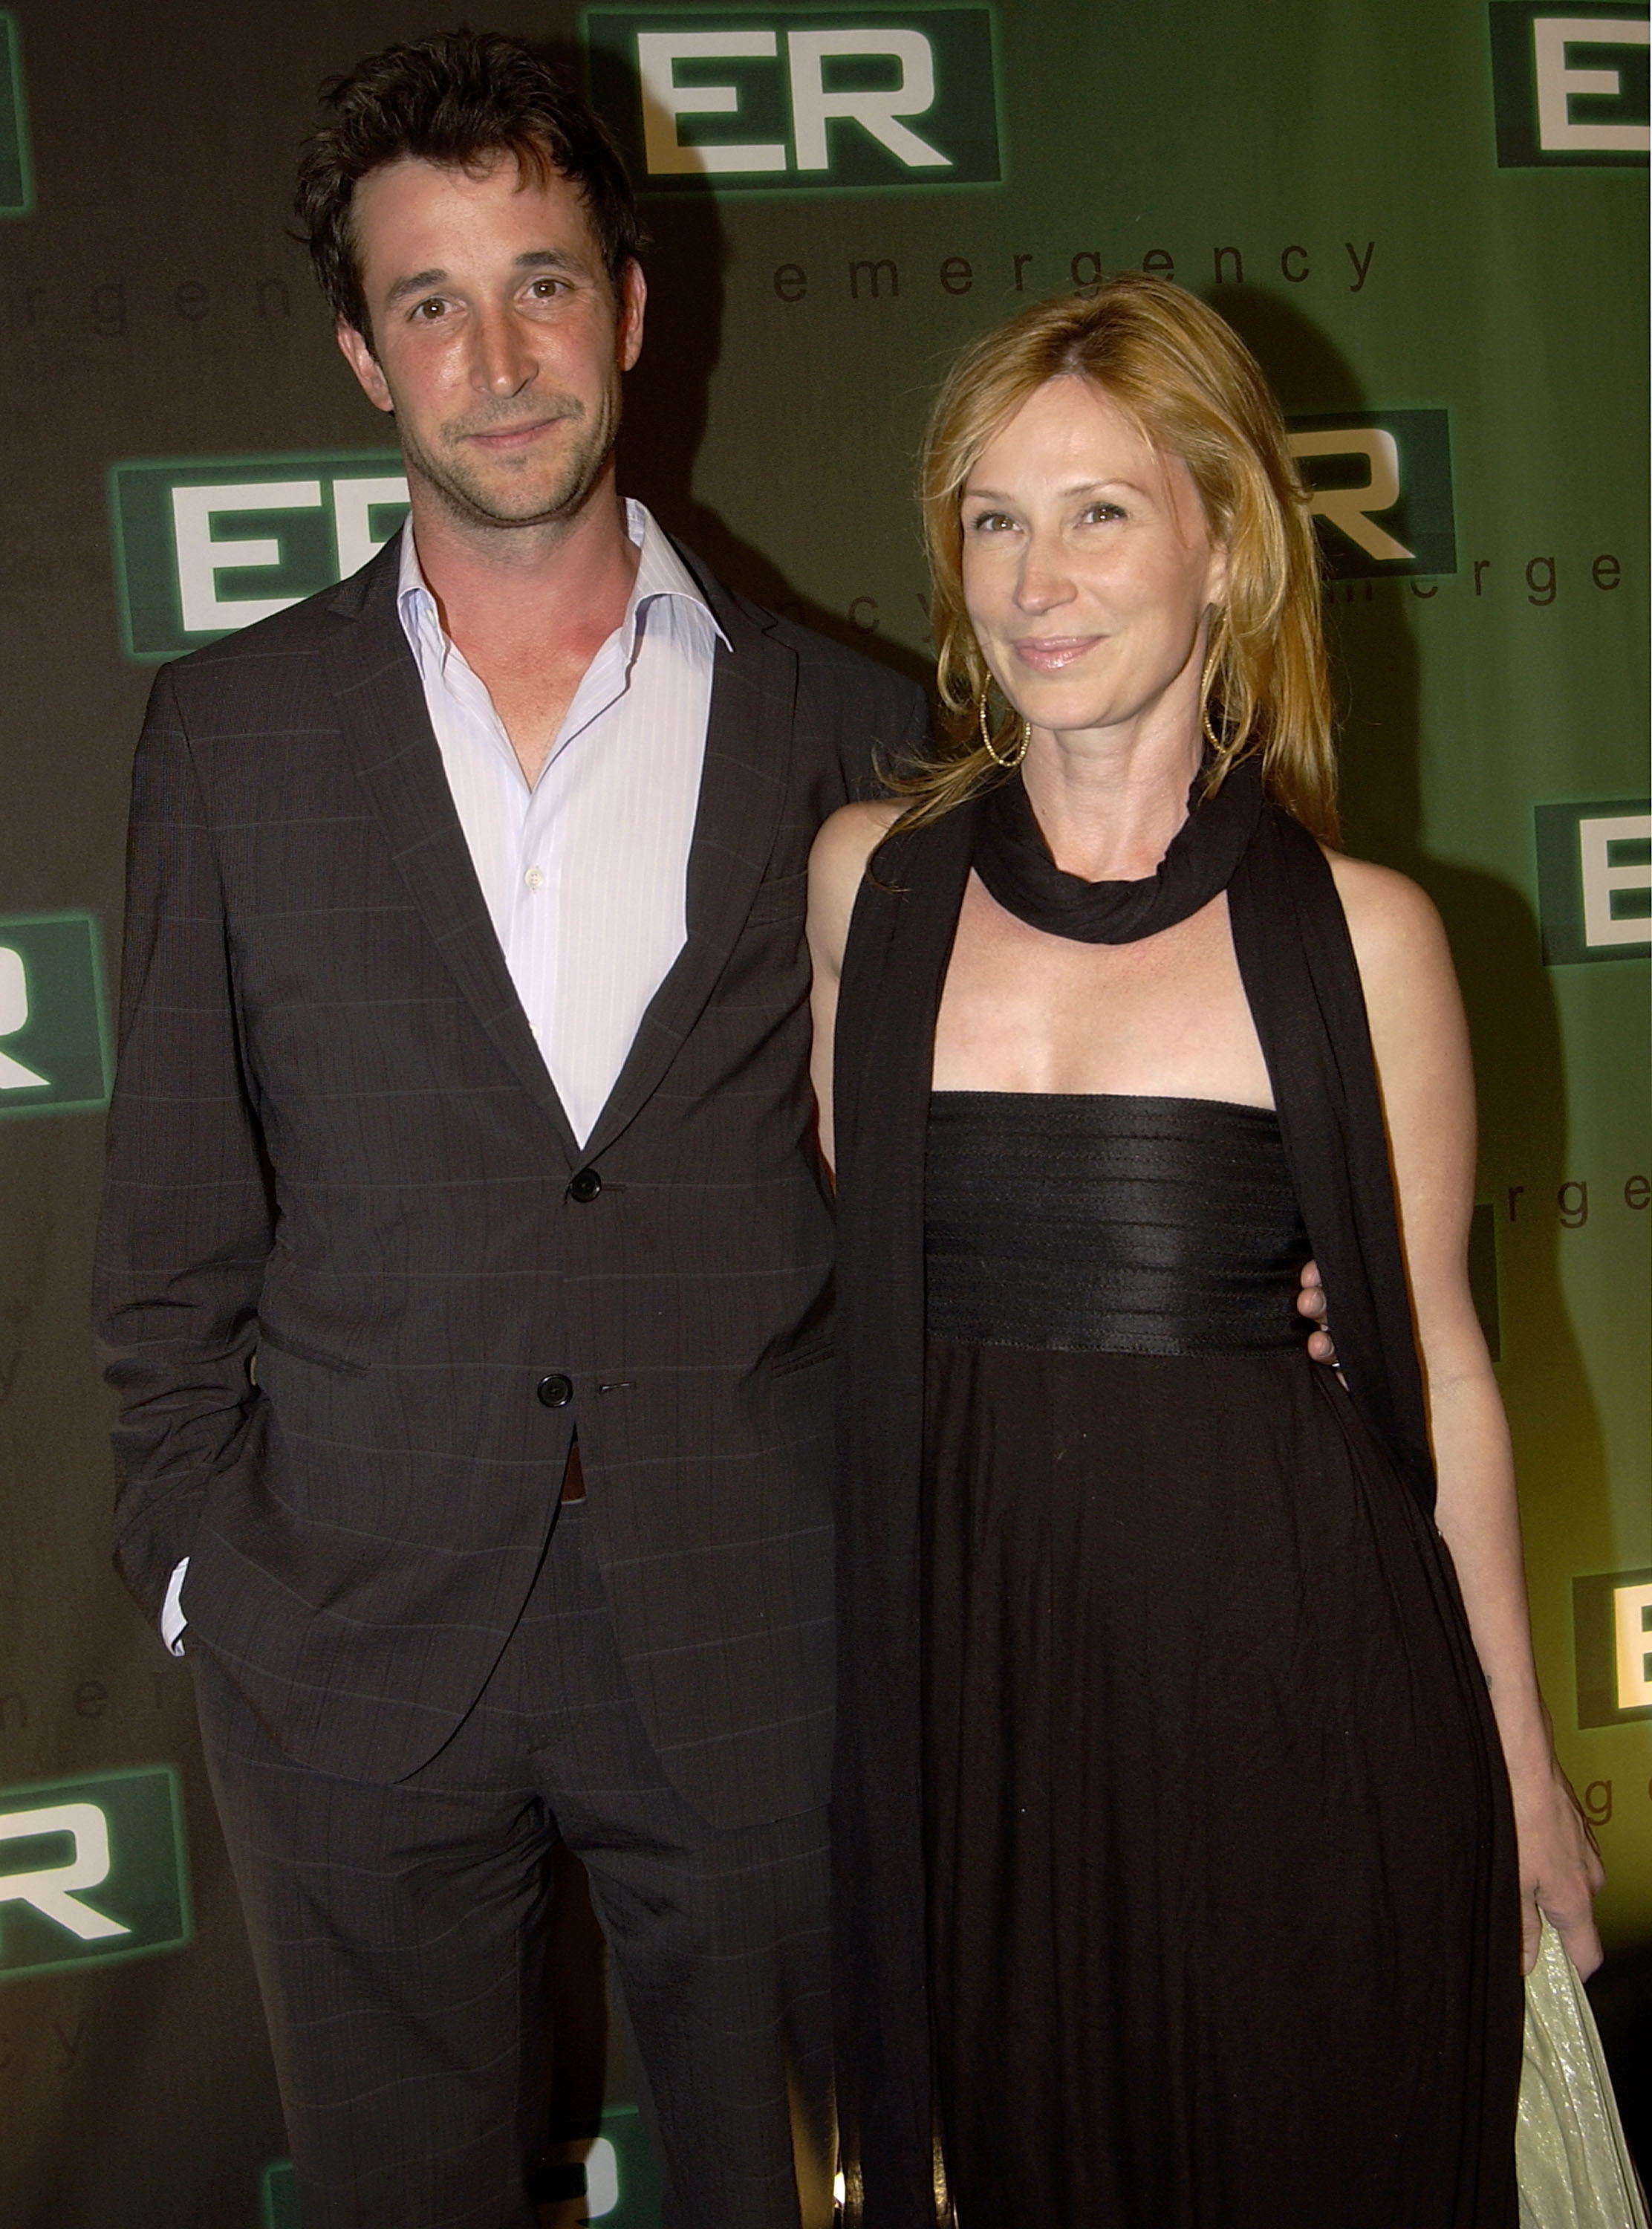 Noah Wyle and divorce